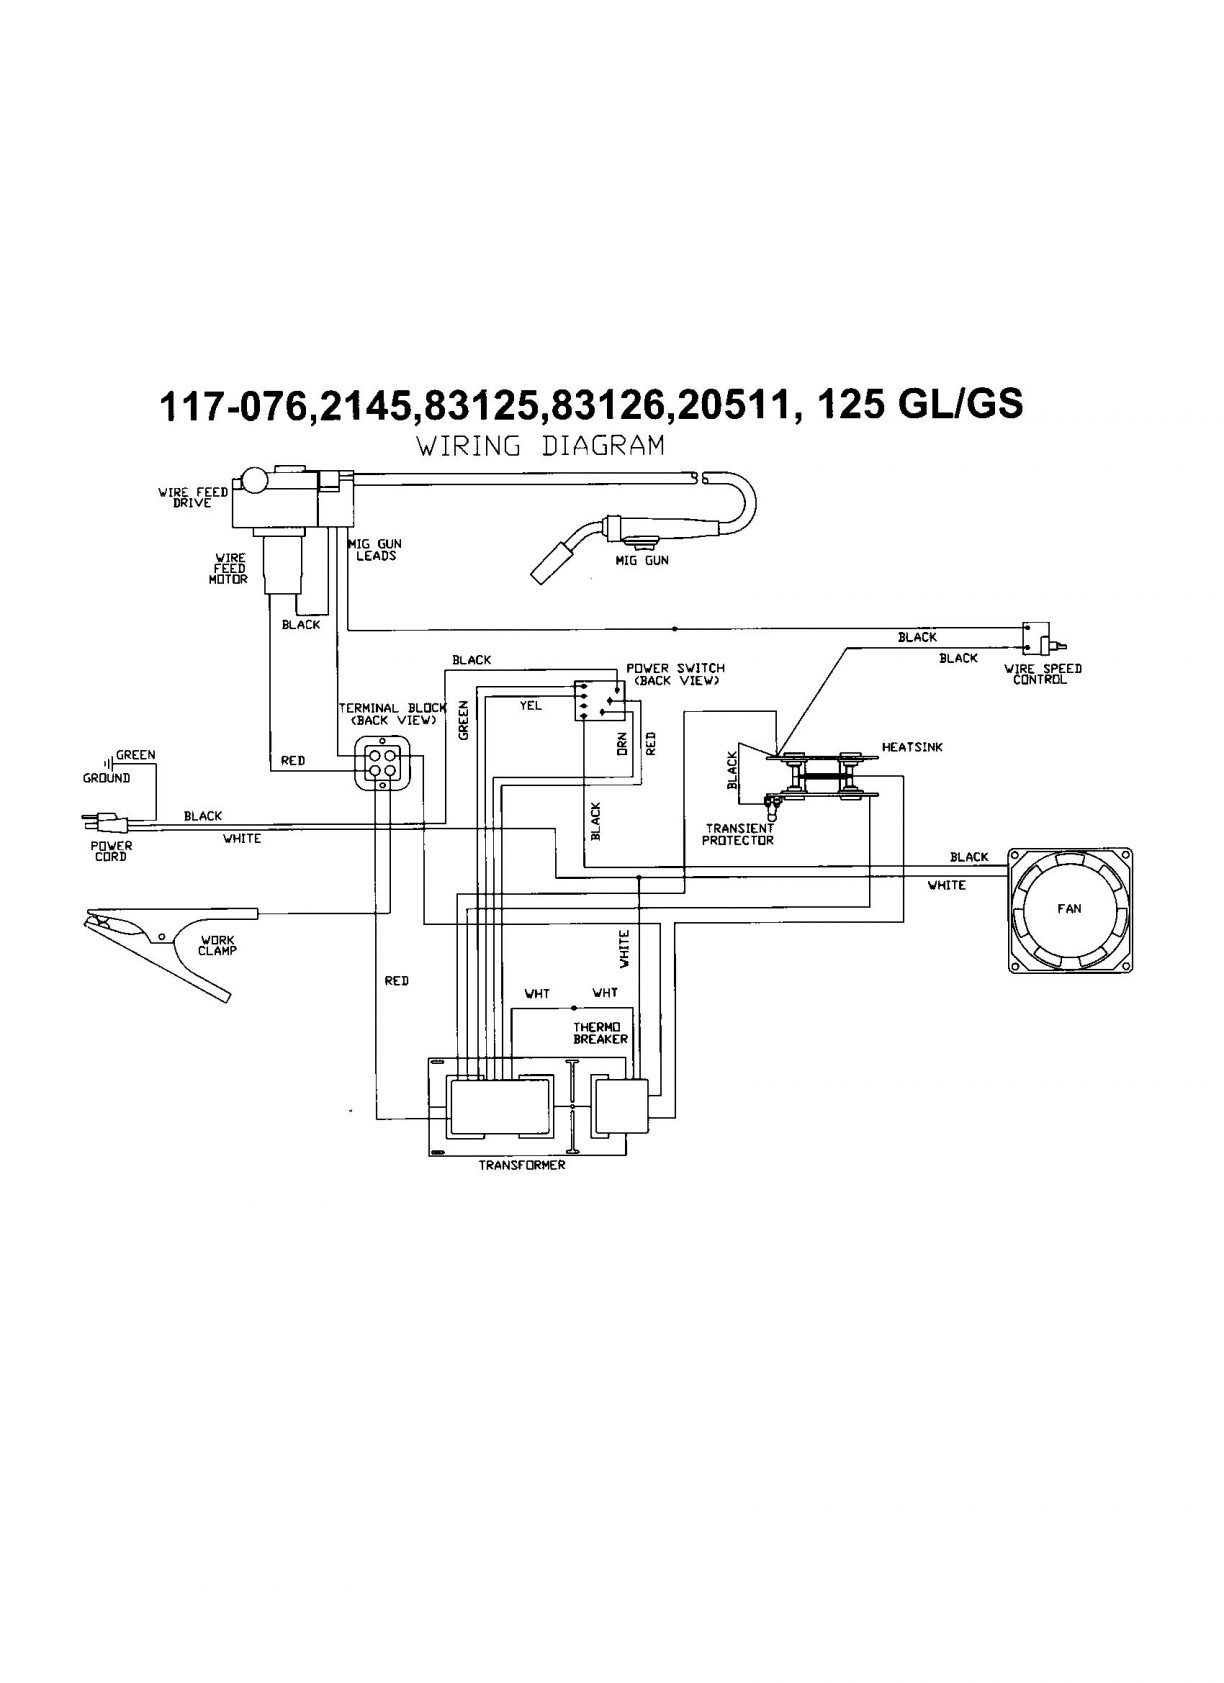 welding machine wiring diagram pdf fresh within circuit diagram in mig welding machine diagram [ 1224 x 1683 Pixel ]